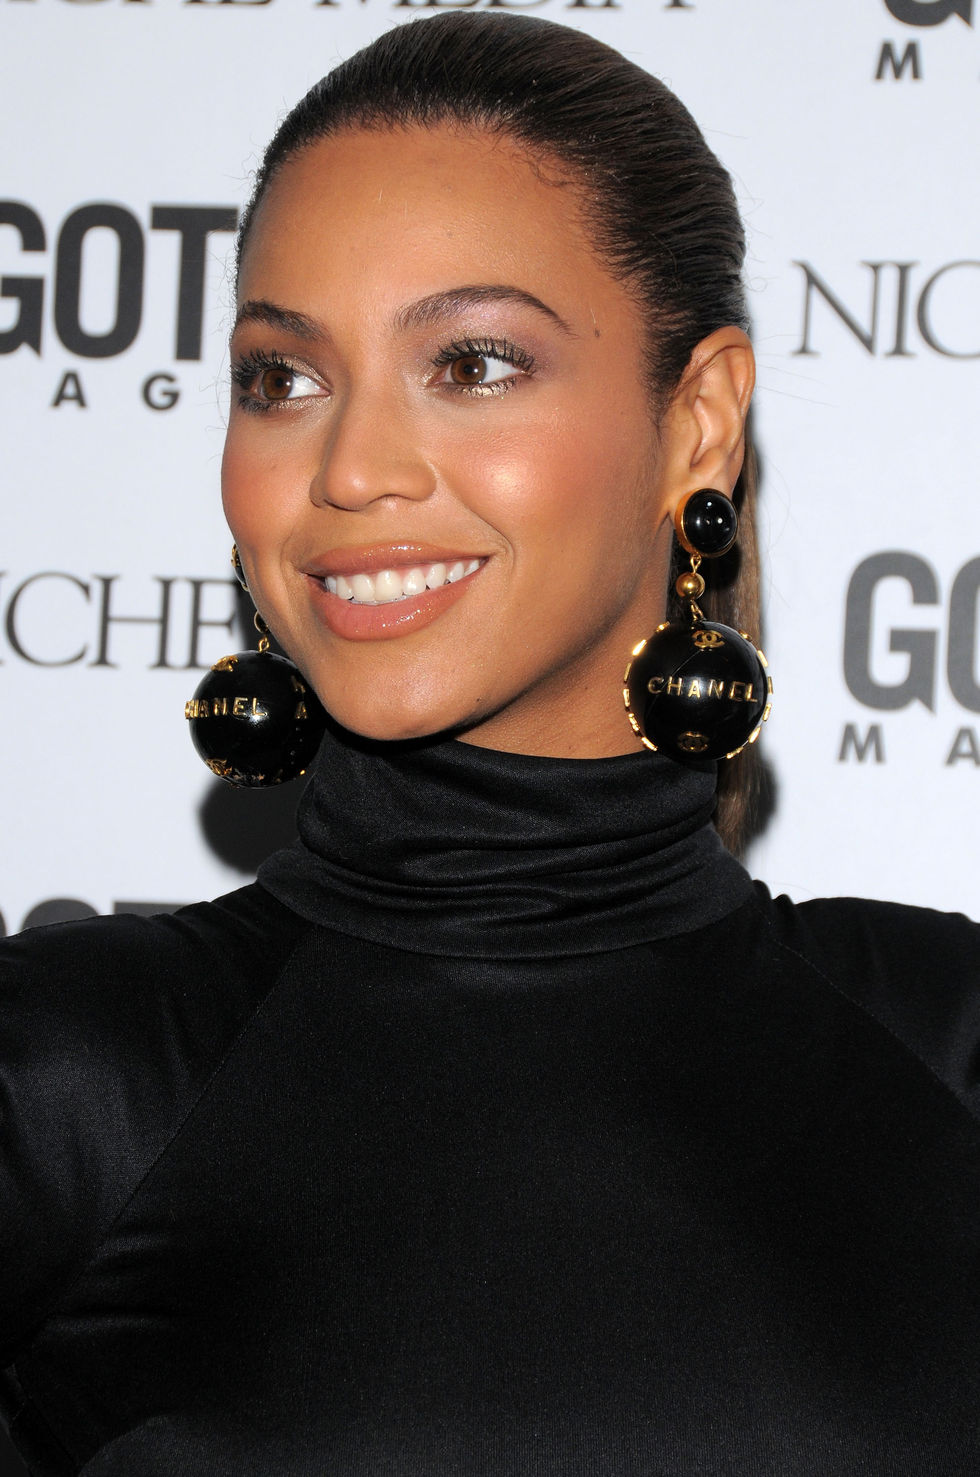 beyonce-gotham-magazines-annual-gala-in-new-york-city-01